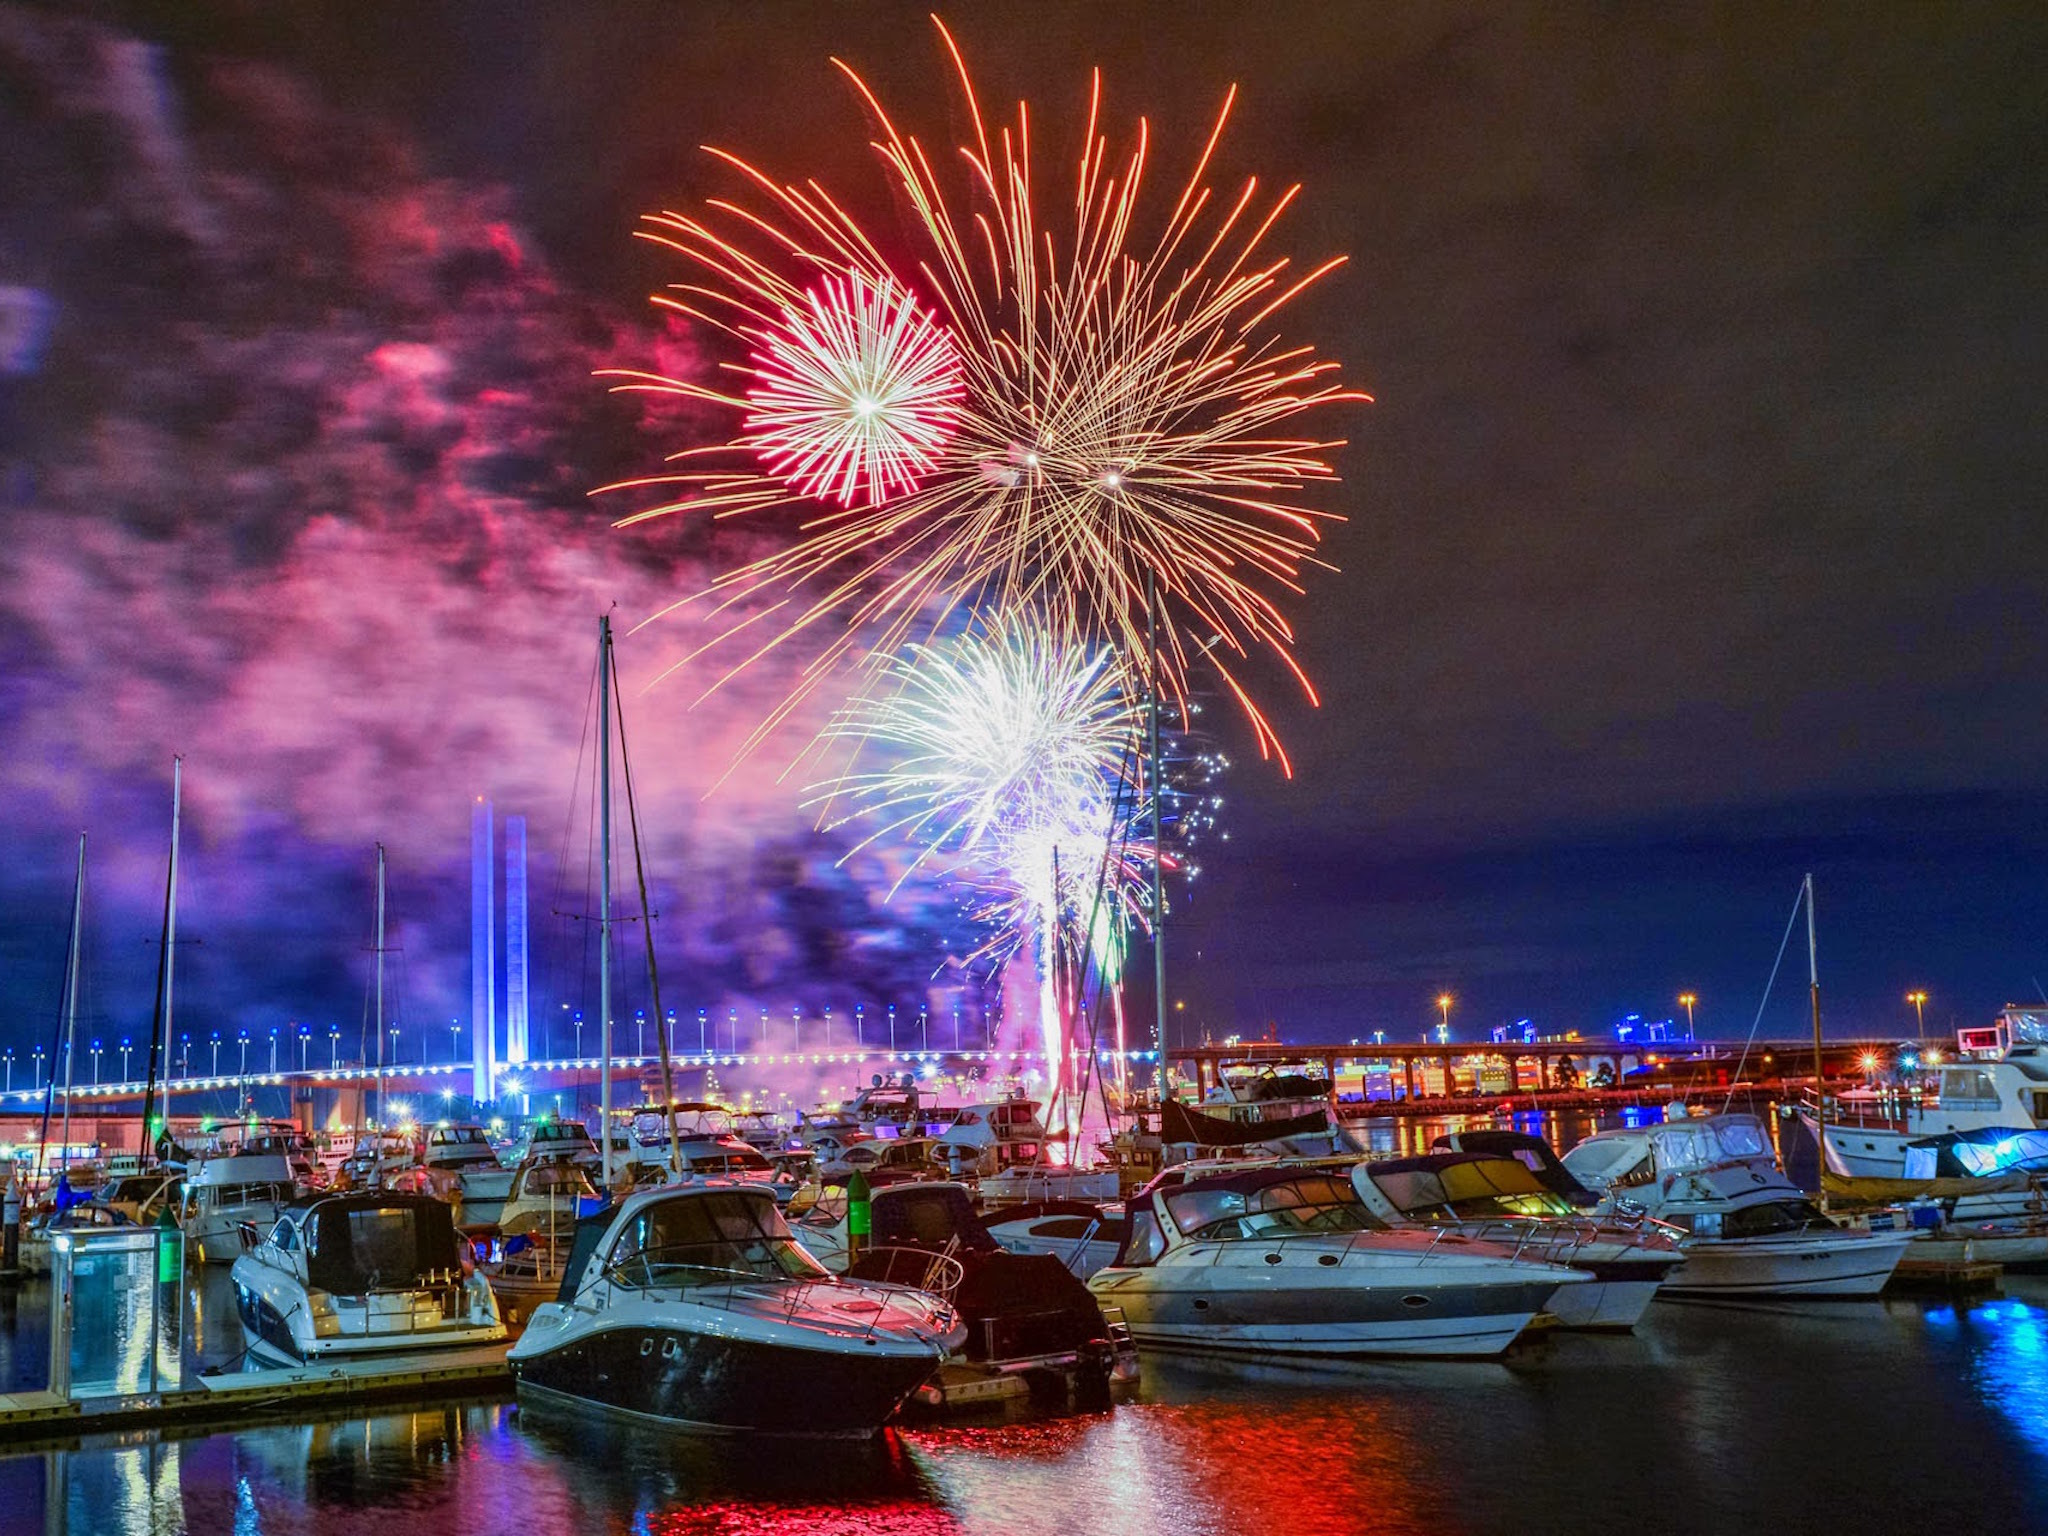 Friday night fireworks at the Docklands